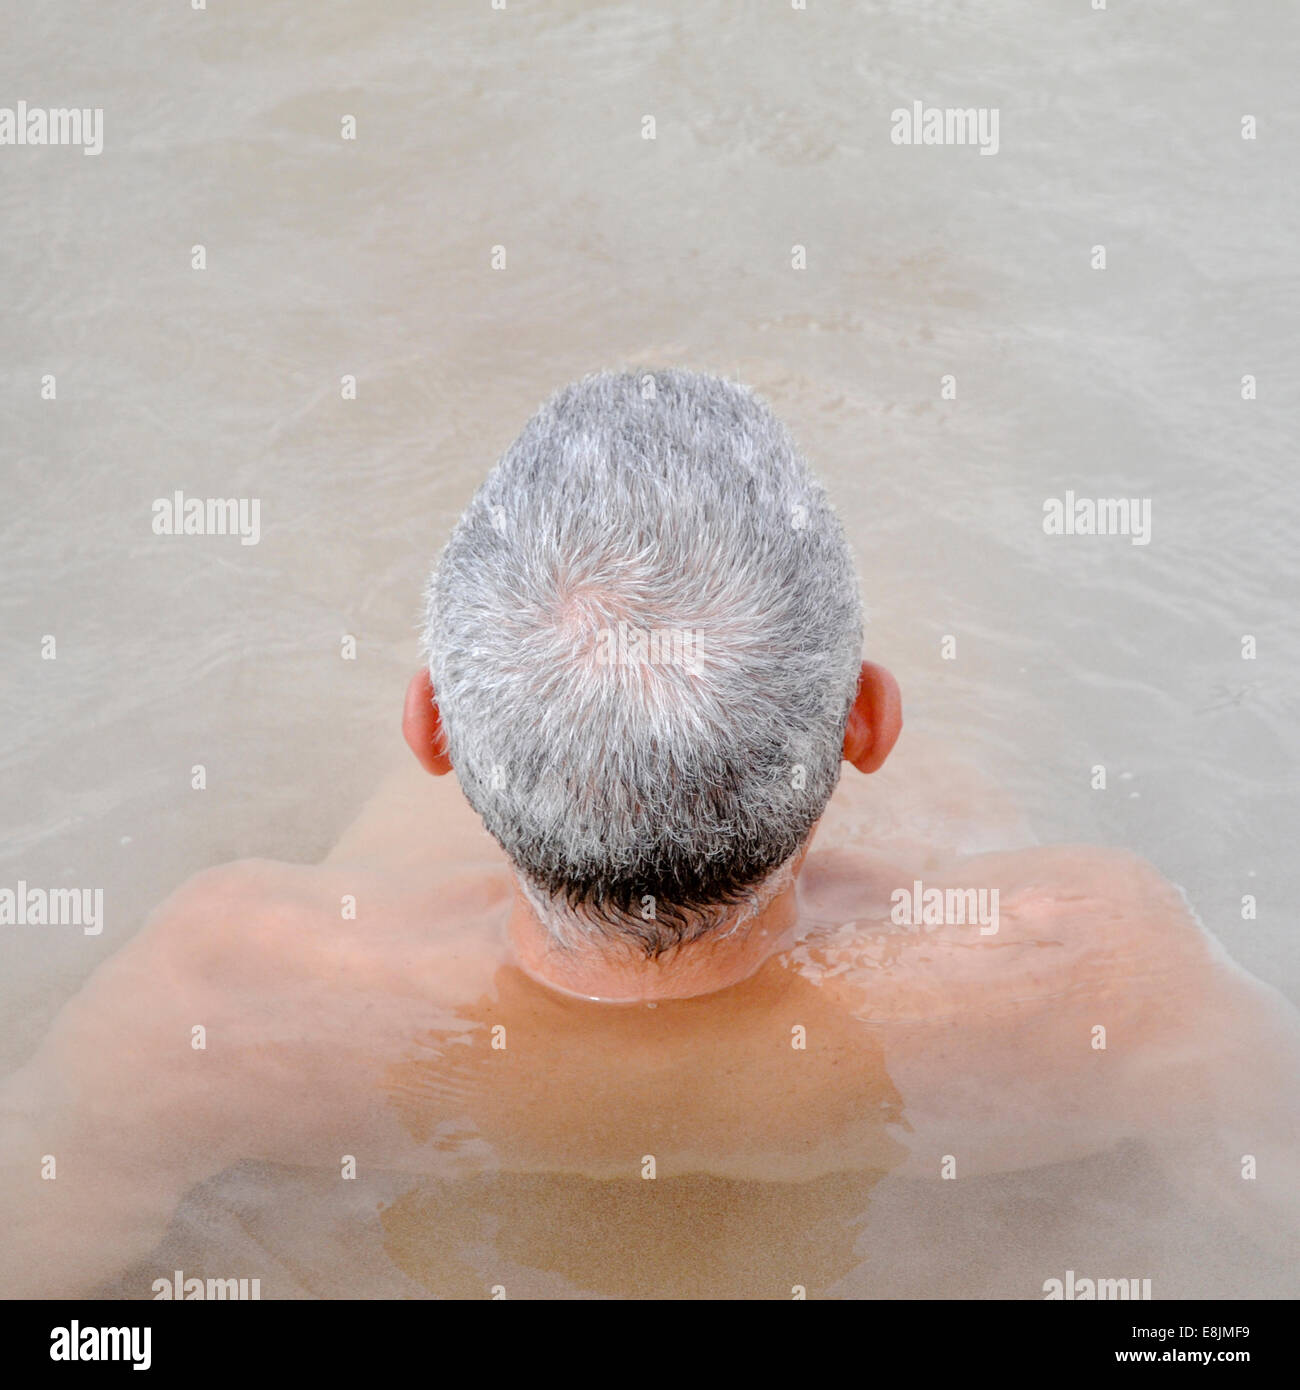 Bather - Stock Image